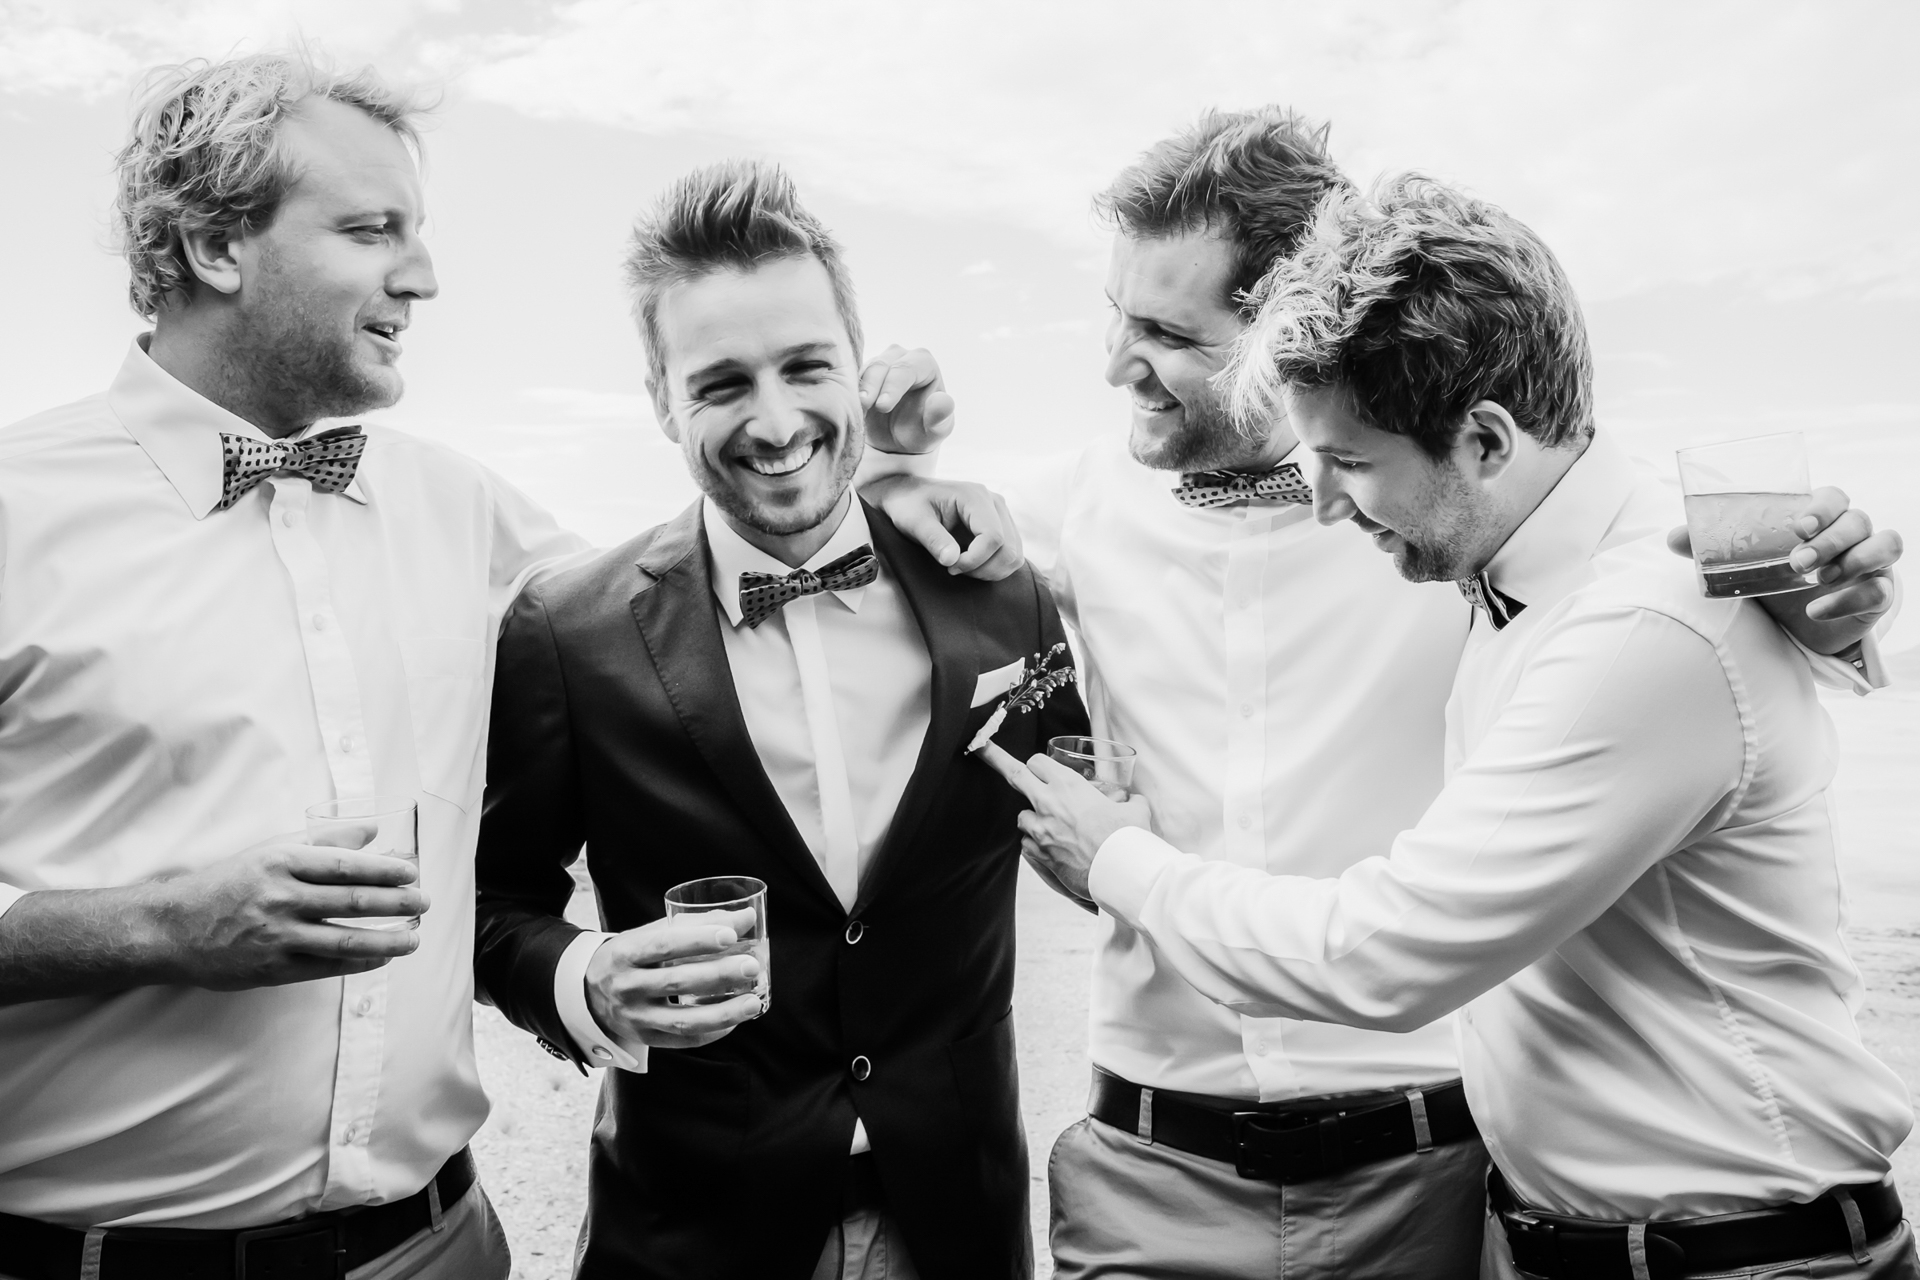 Namibia, Africa Elopement Photography | The groom spent many holidays and weekends in the desert with his friends